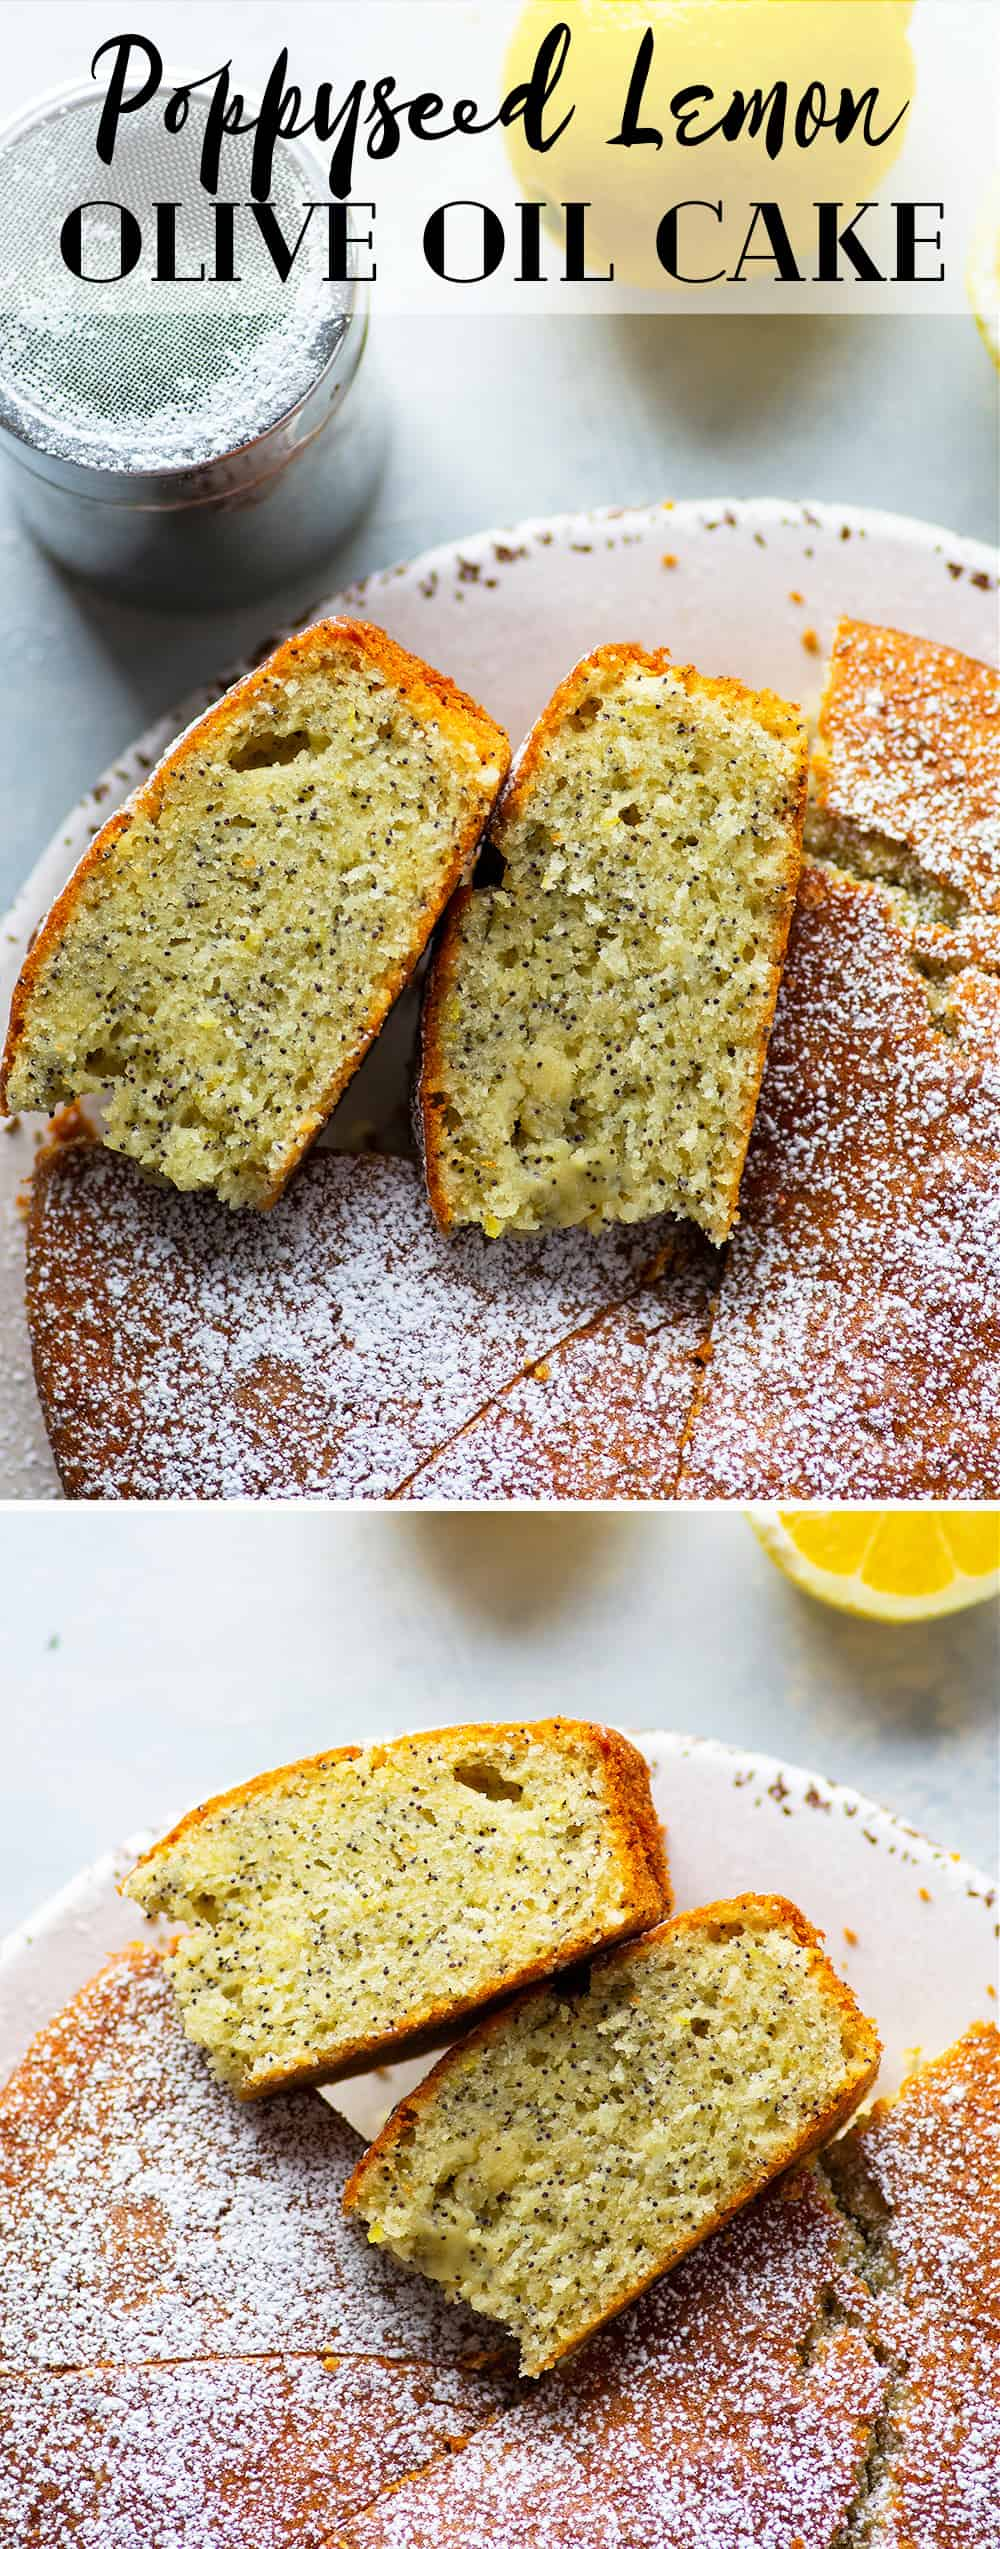 This lemon olive oil cake packs a punch of fresh lemon flavor and poppyseeds in an incredibly soft olive oil cake. Top this simple cake off with a dusting of powdered sugar and watch it disappear!